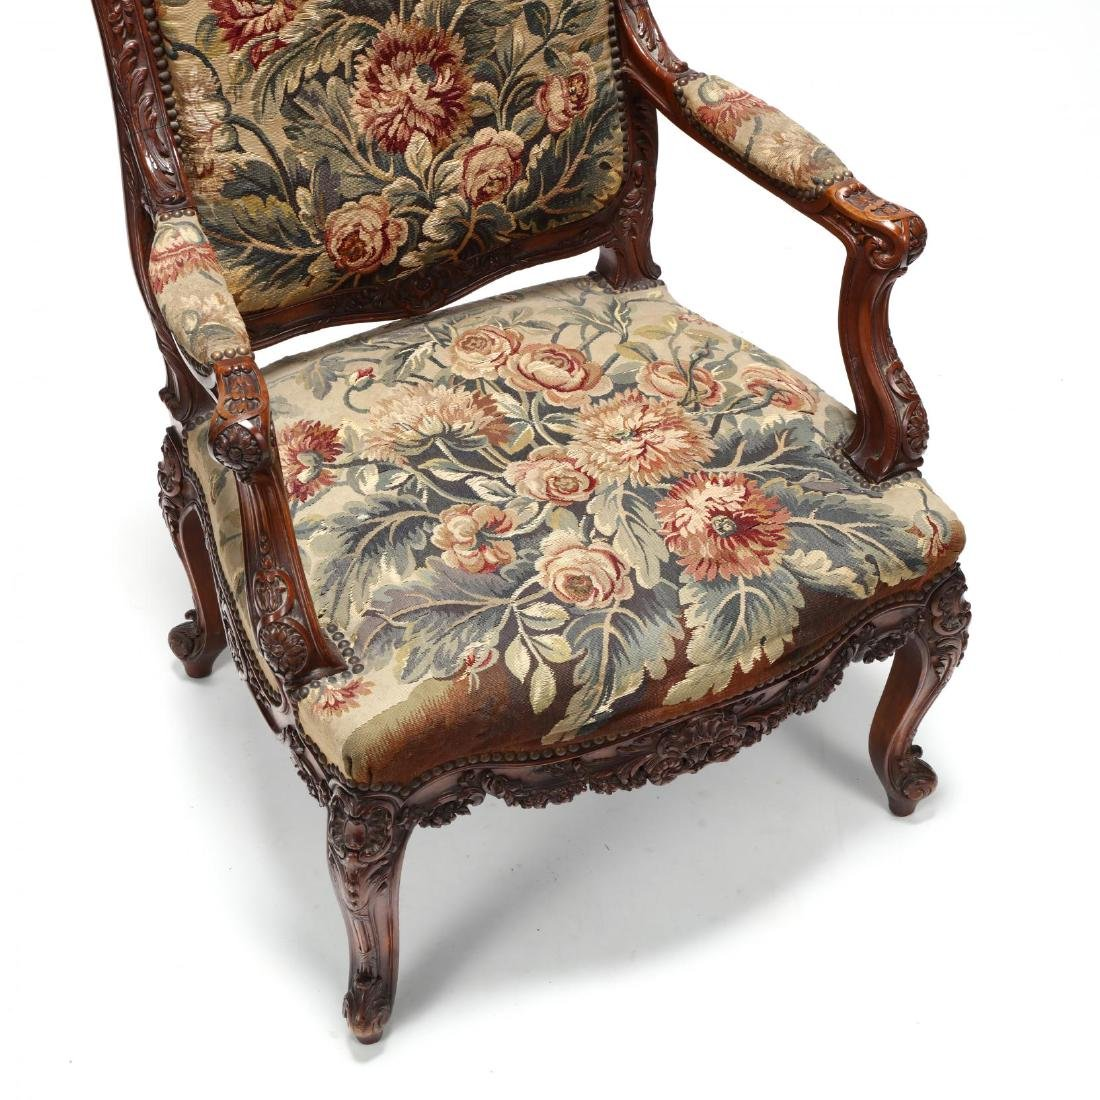 Louis XV Style Carved Walnut Fauteuil - 2